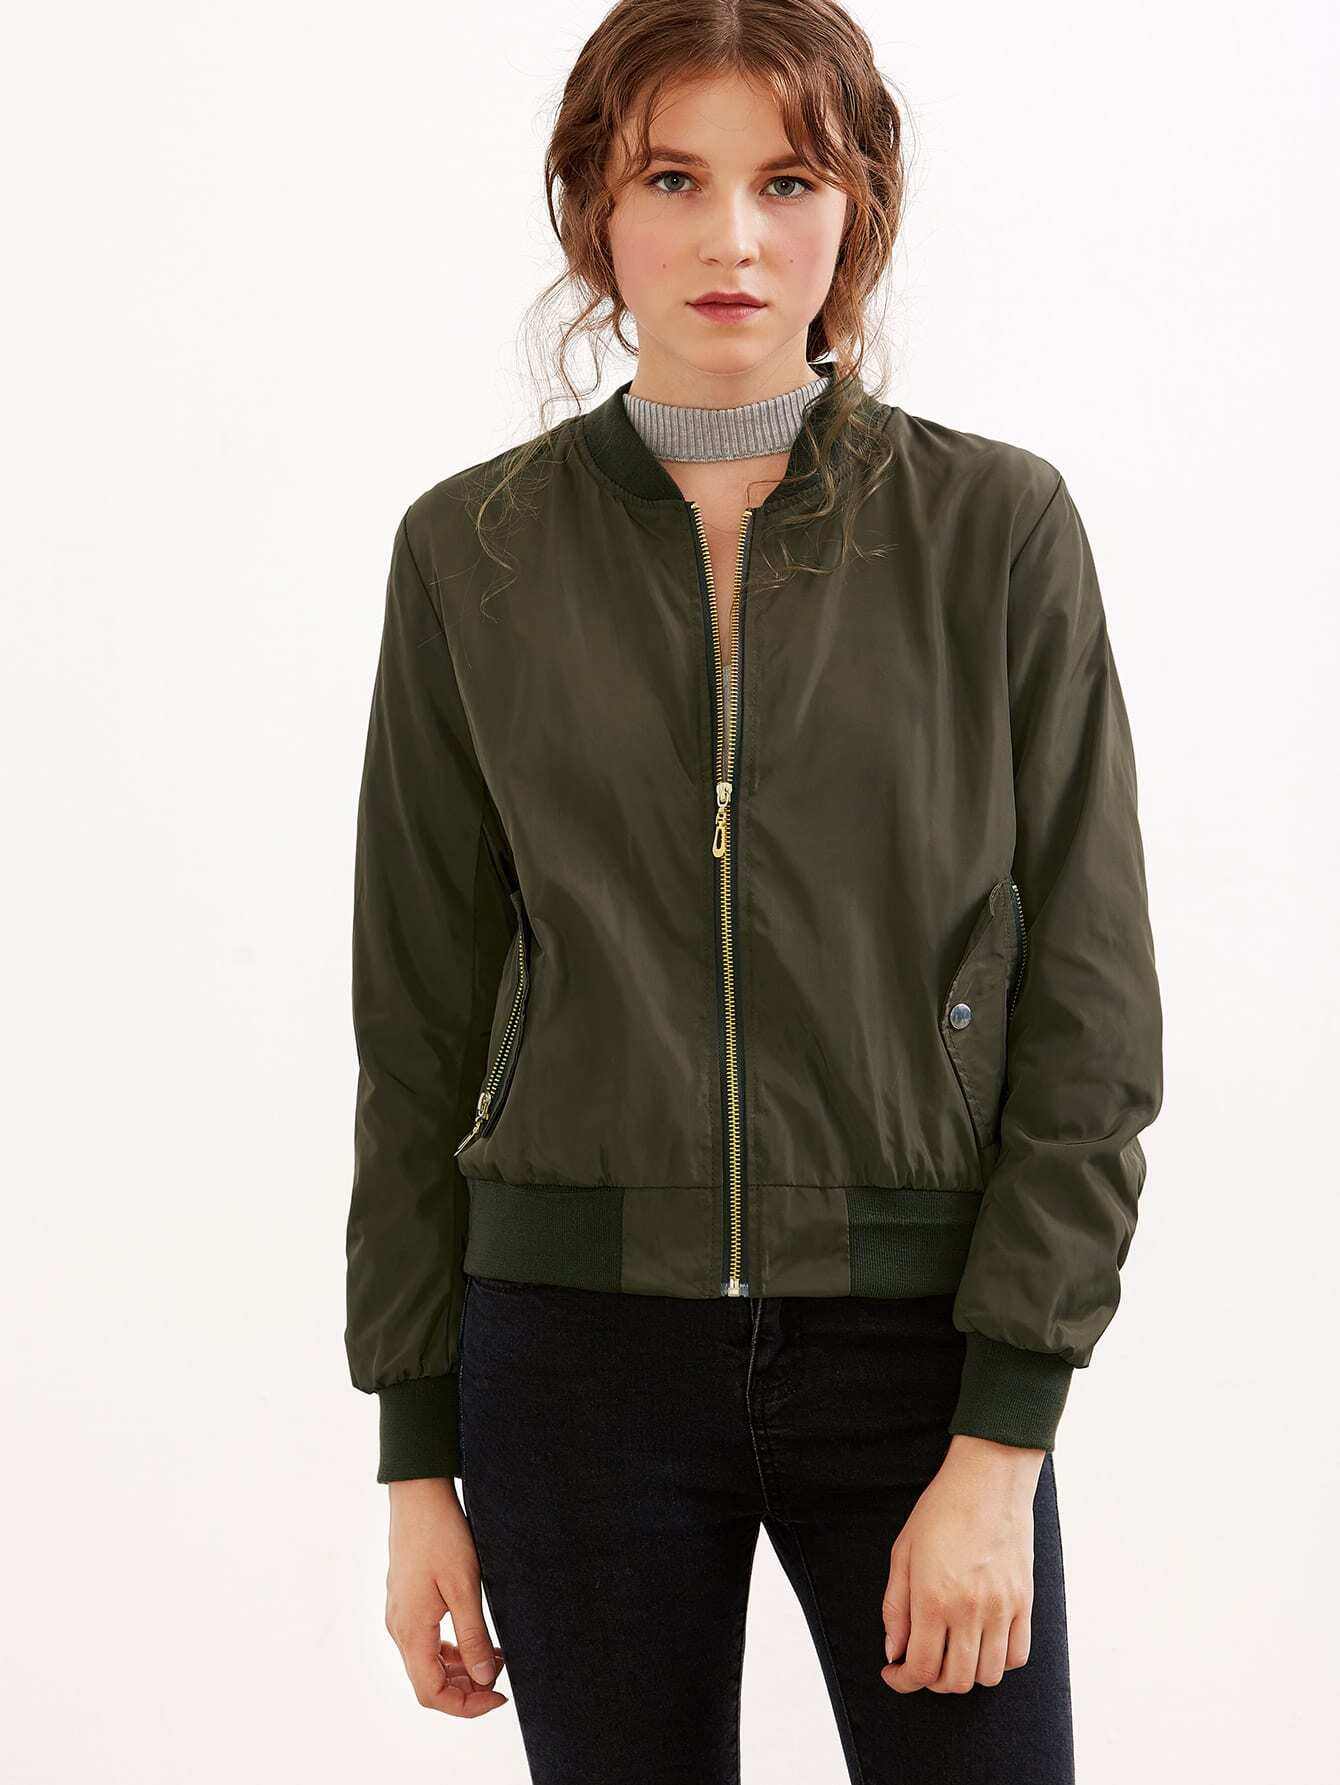 Army Green Shirred Sleeve Zipper Bomber Jacket cougar 530m army green